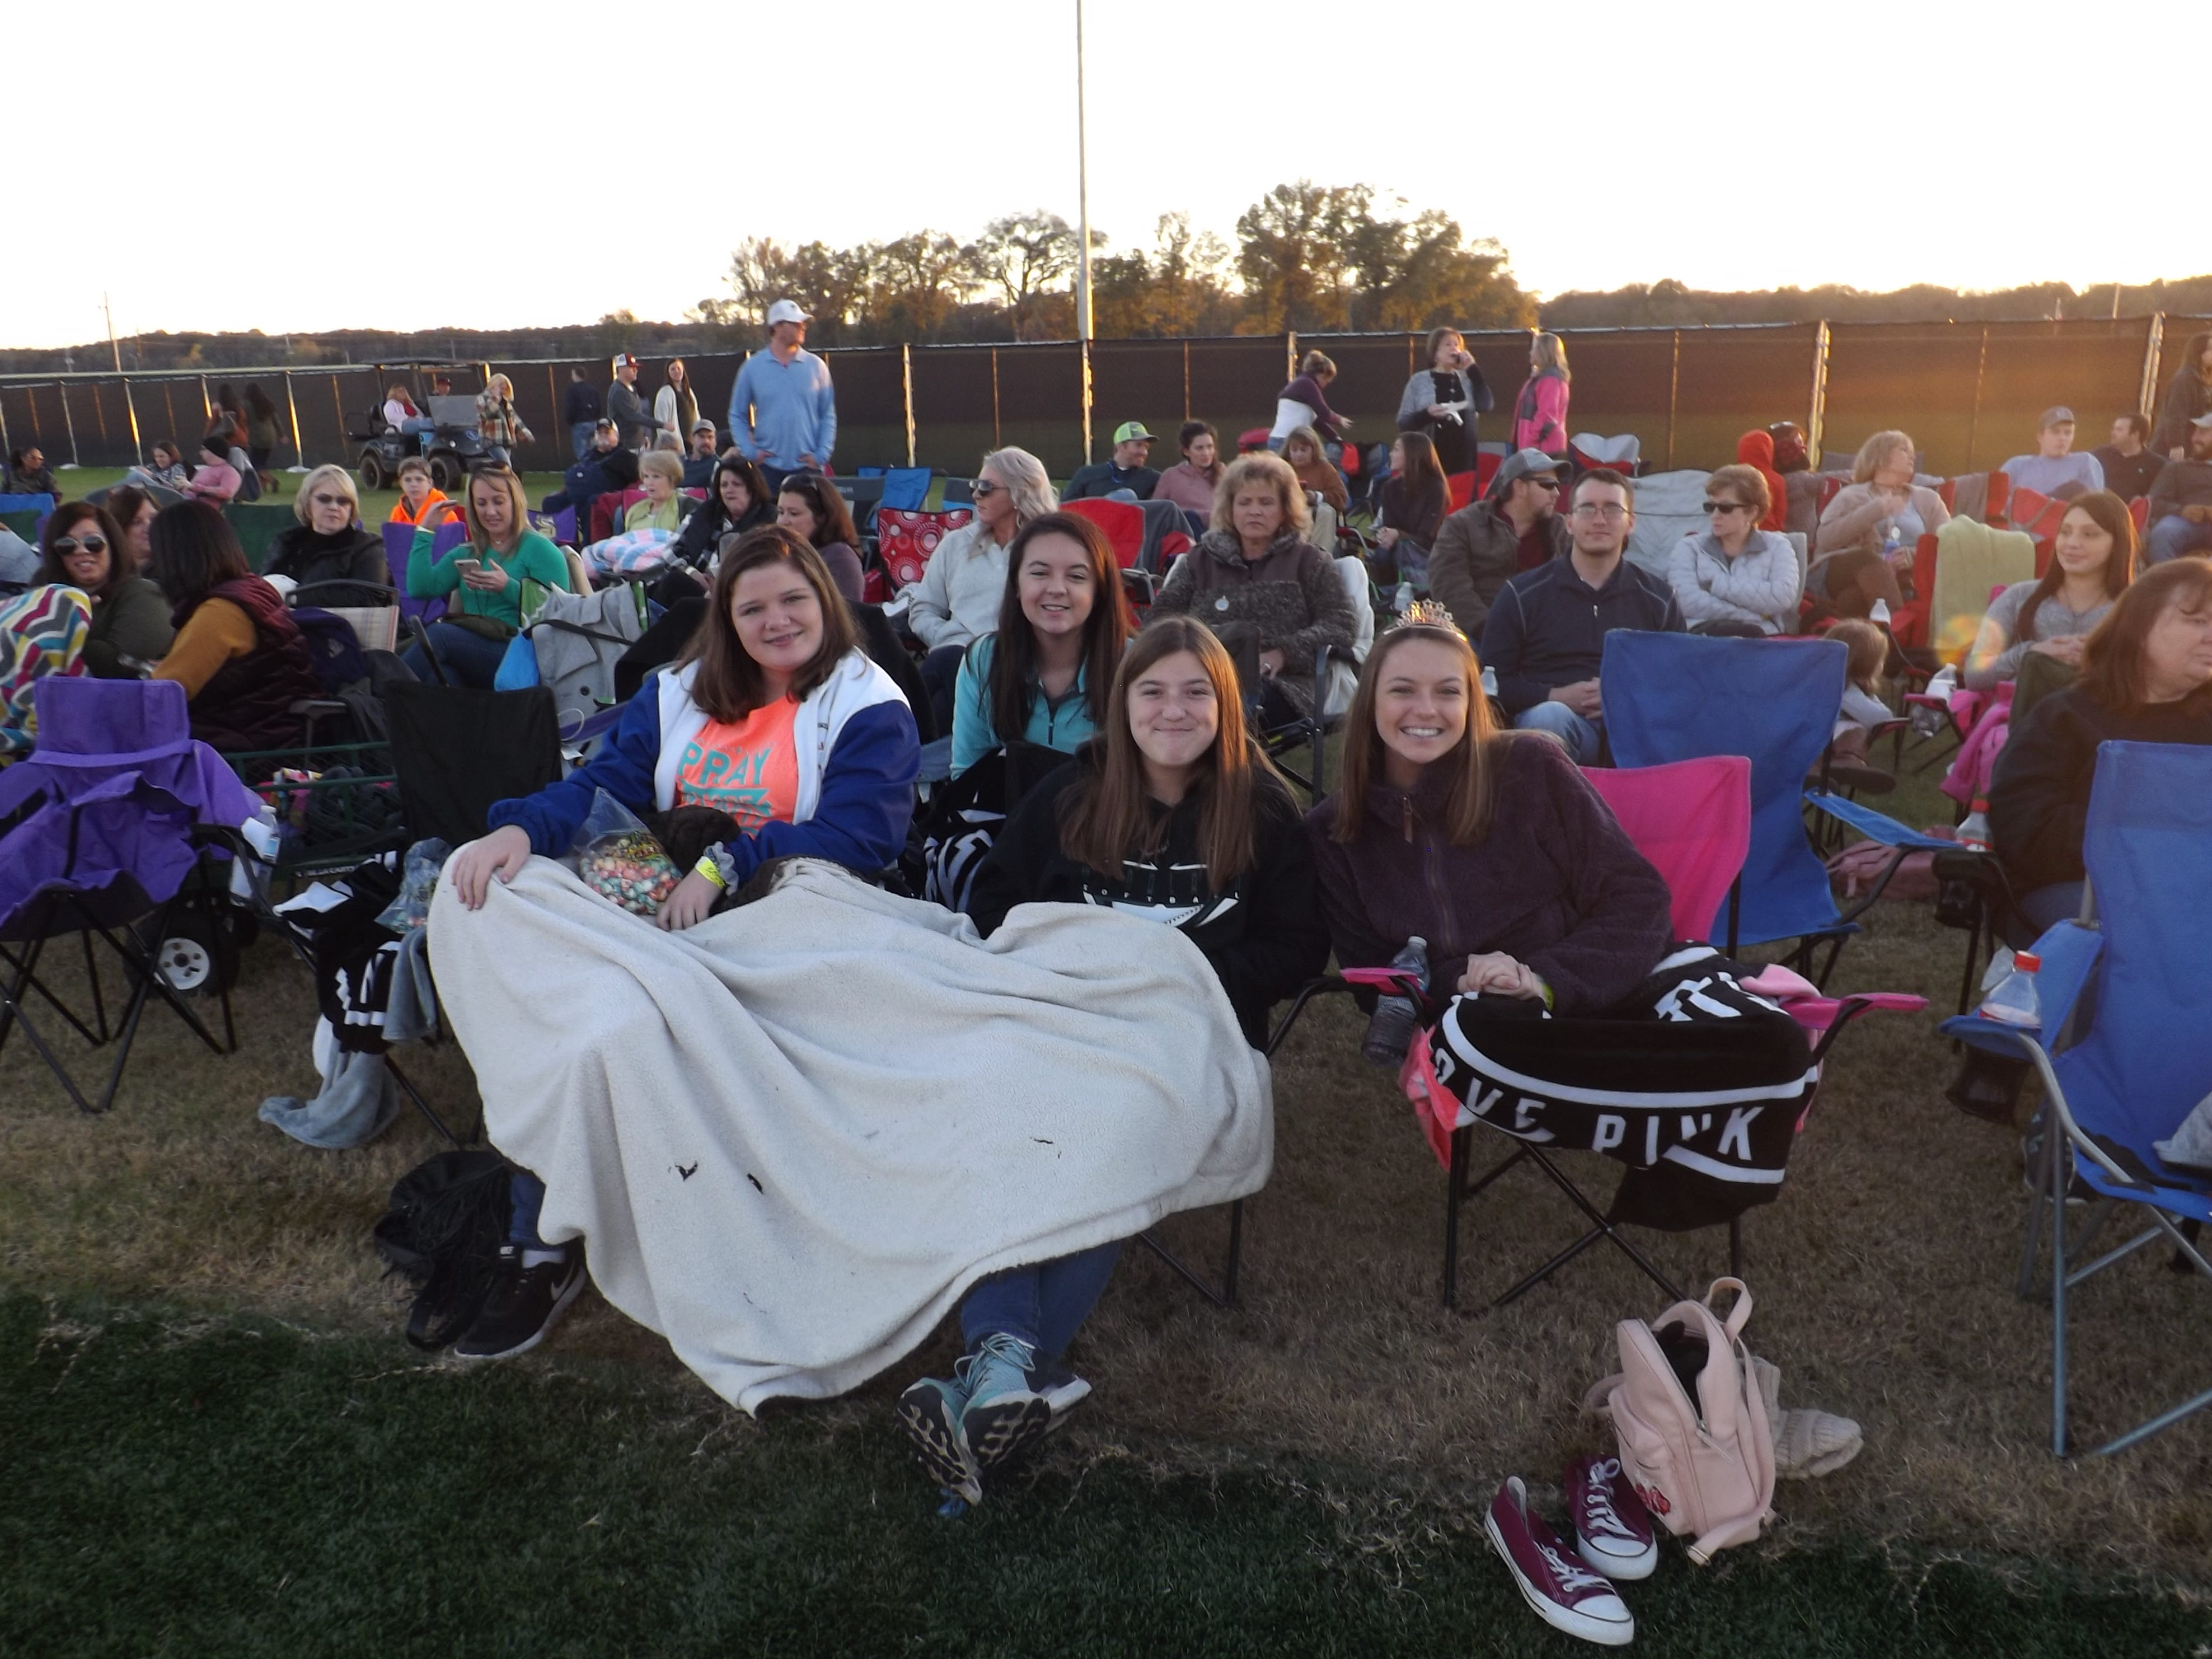 Thousands turned out to watch Bayou Stock on Nov. 17 at the Sterlington Sports Complex in Sterlington, La. It was the first music festival hosted by country singer Dylan Scott, a Bastrop native. The event ran through the day, highlighted talent from Louisiana and ended with fireworks.